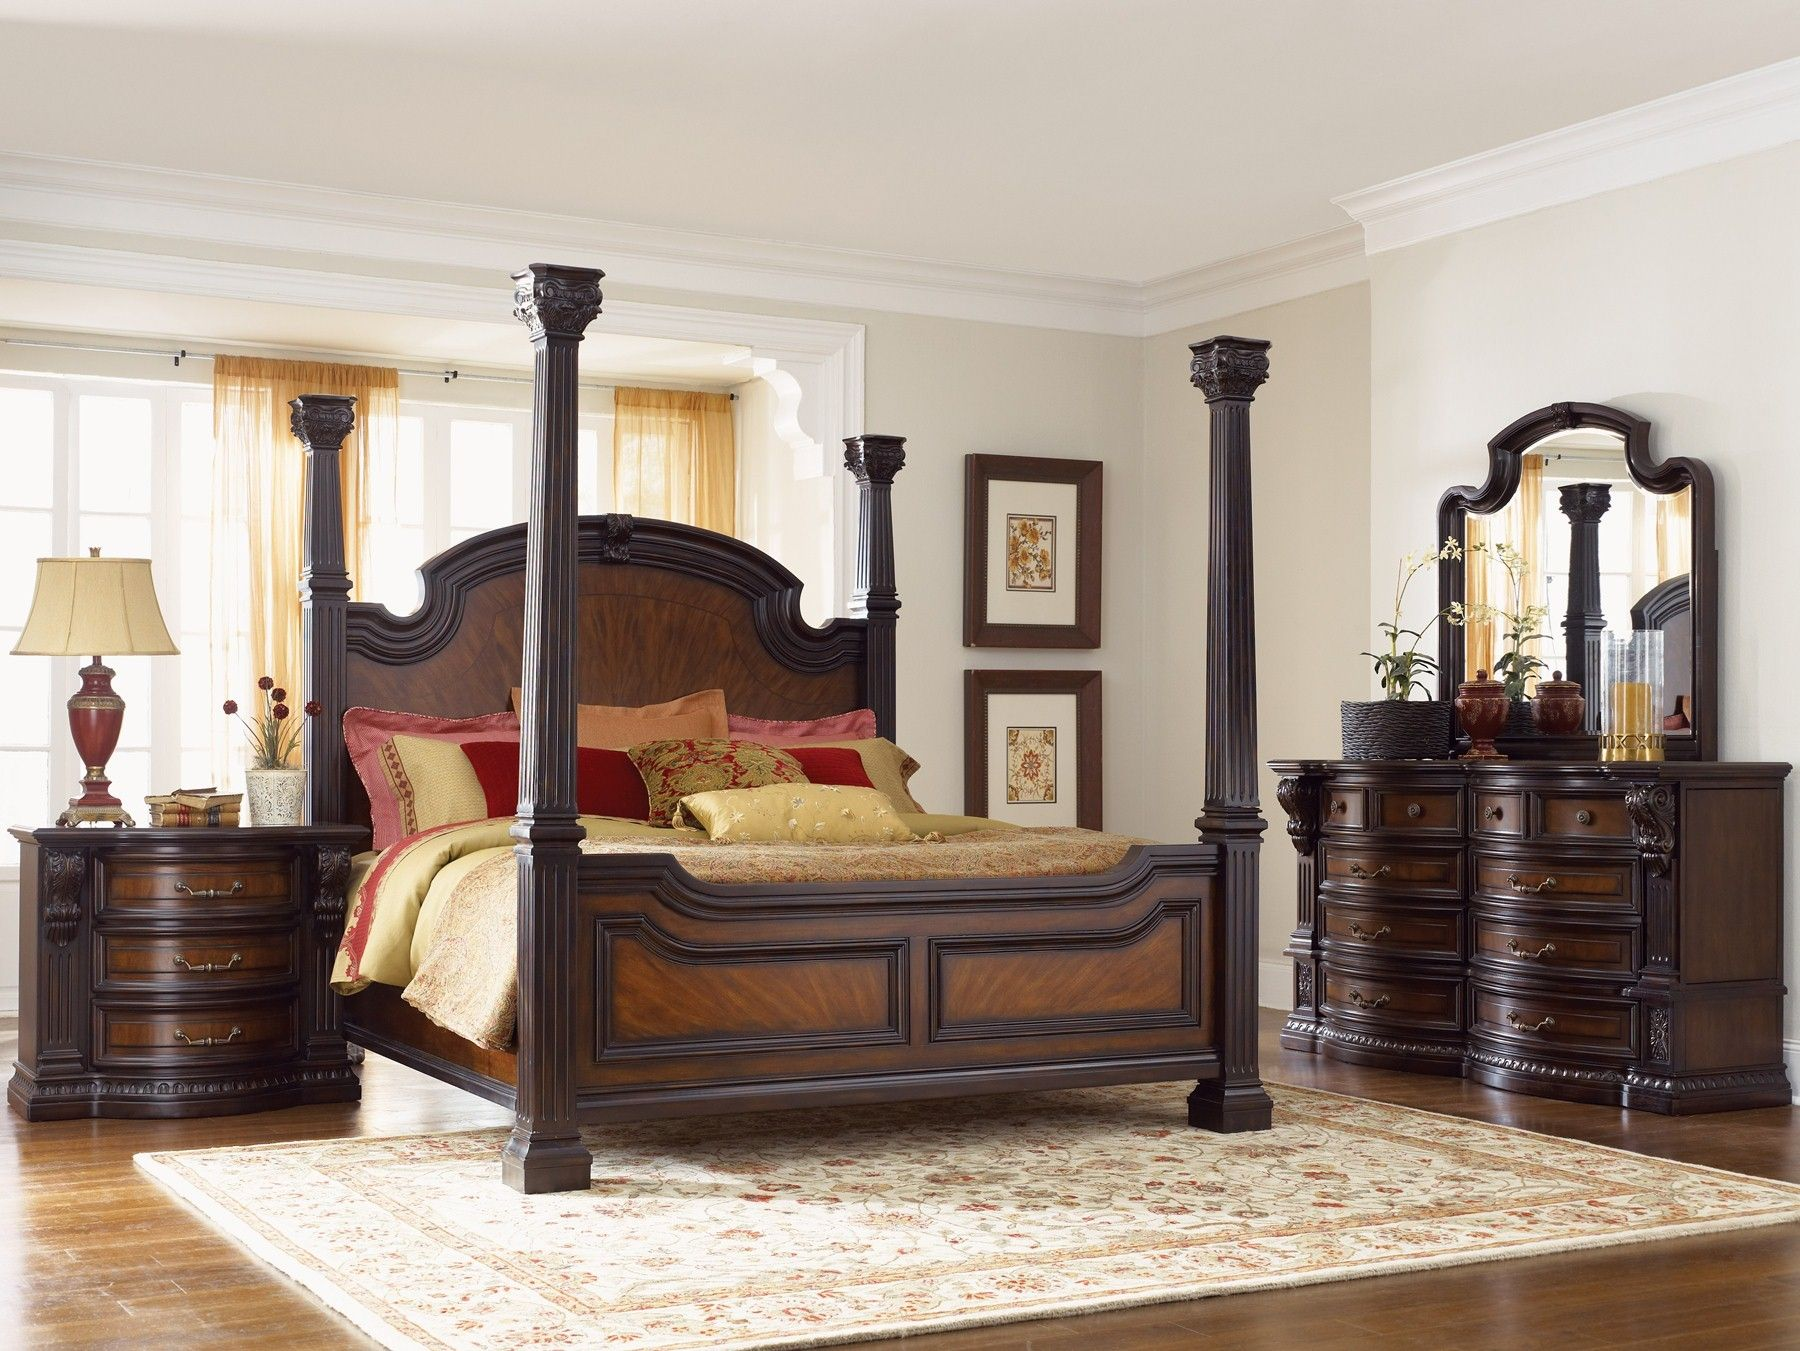 17 best ideas about King Bedroom Furniture Sets on Pinterest   White bedroom  furniture sets  Bedroom furniture sets and White bedroom set. 17 best ideas about King Bedroom Furniture Sets on Pinterest